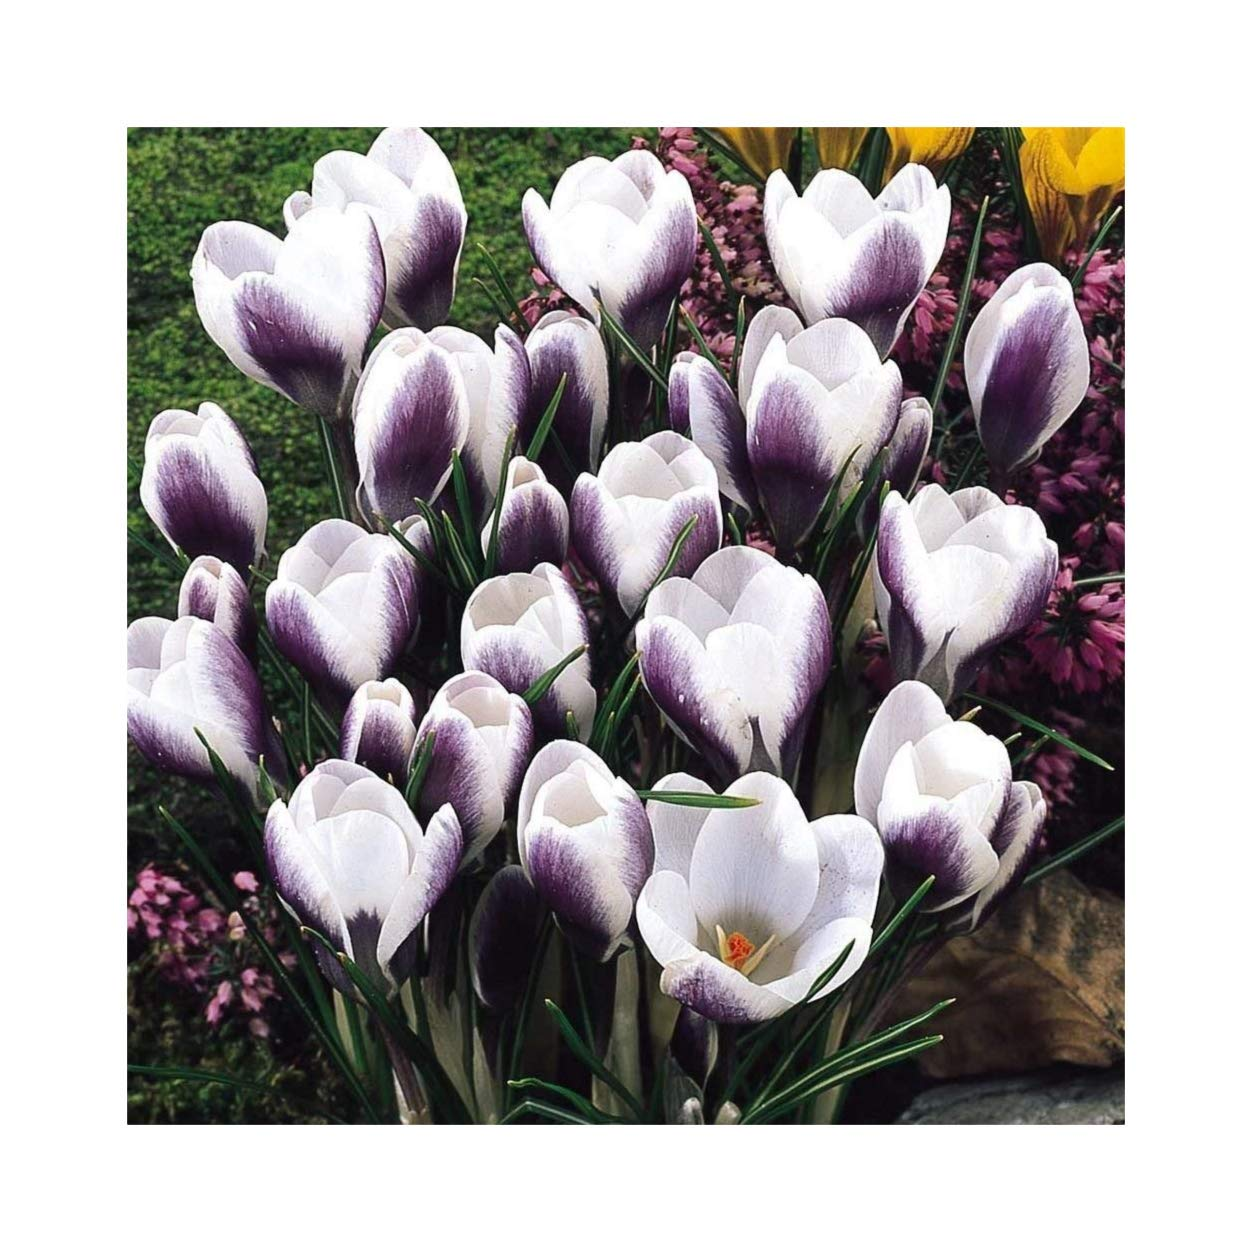 100 Crocus Chrysanthus Prins Claus Spring Flowering Bulbs by Plug Plants Express Limited